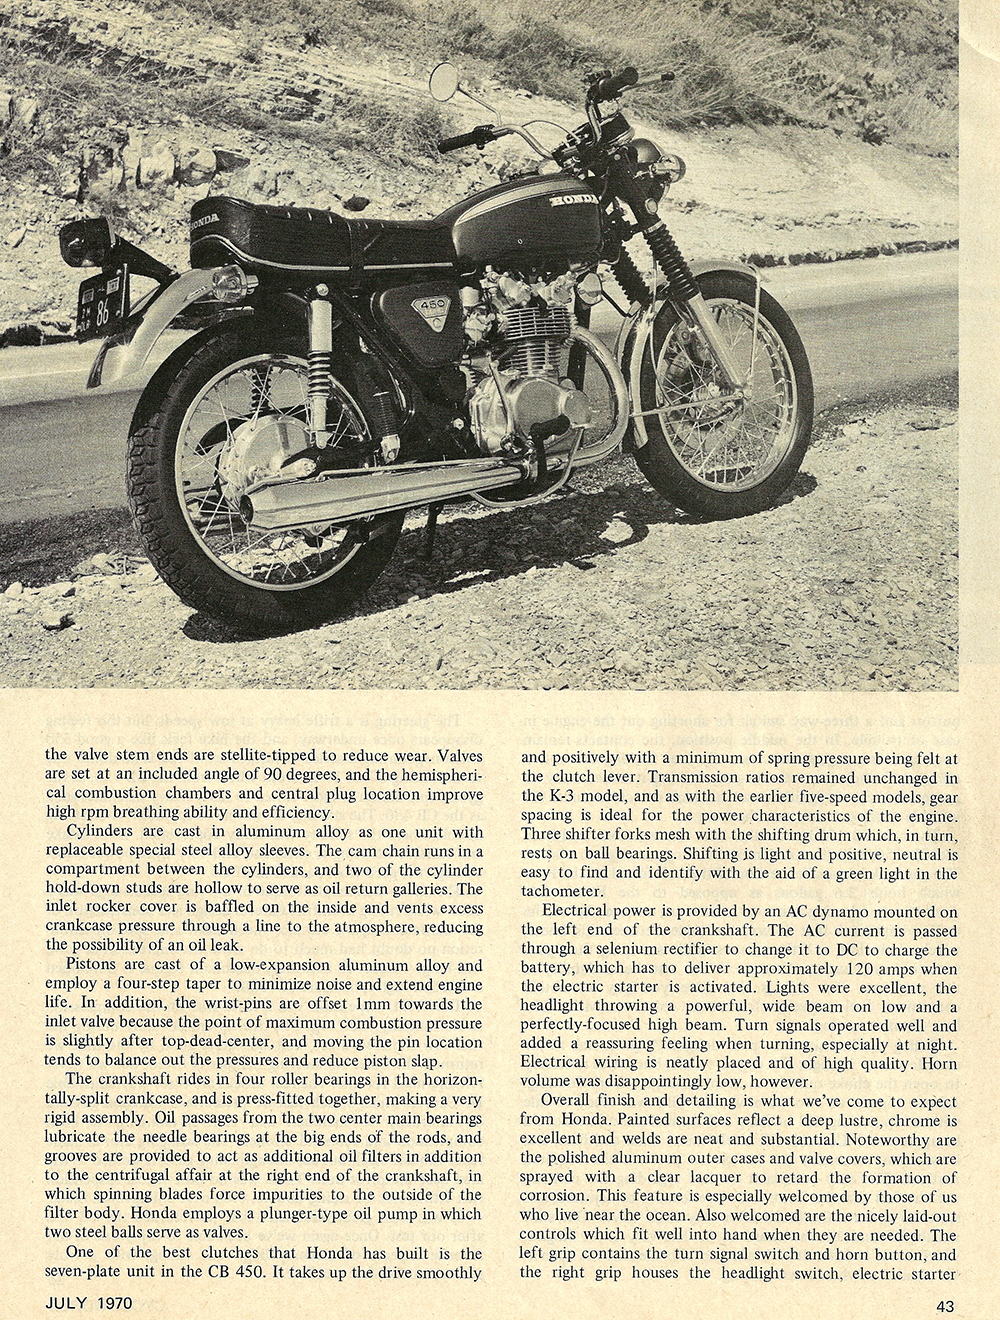 1970 Honda CB450 road test 03.jpg